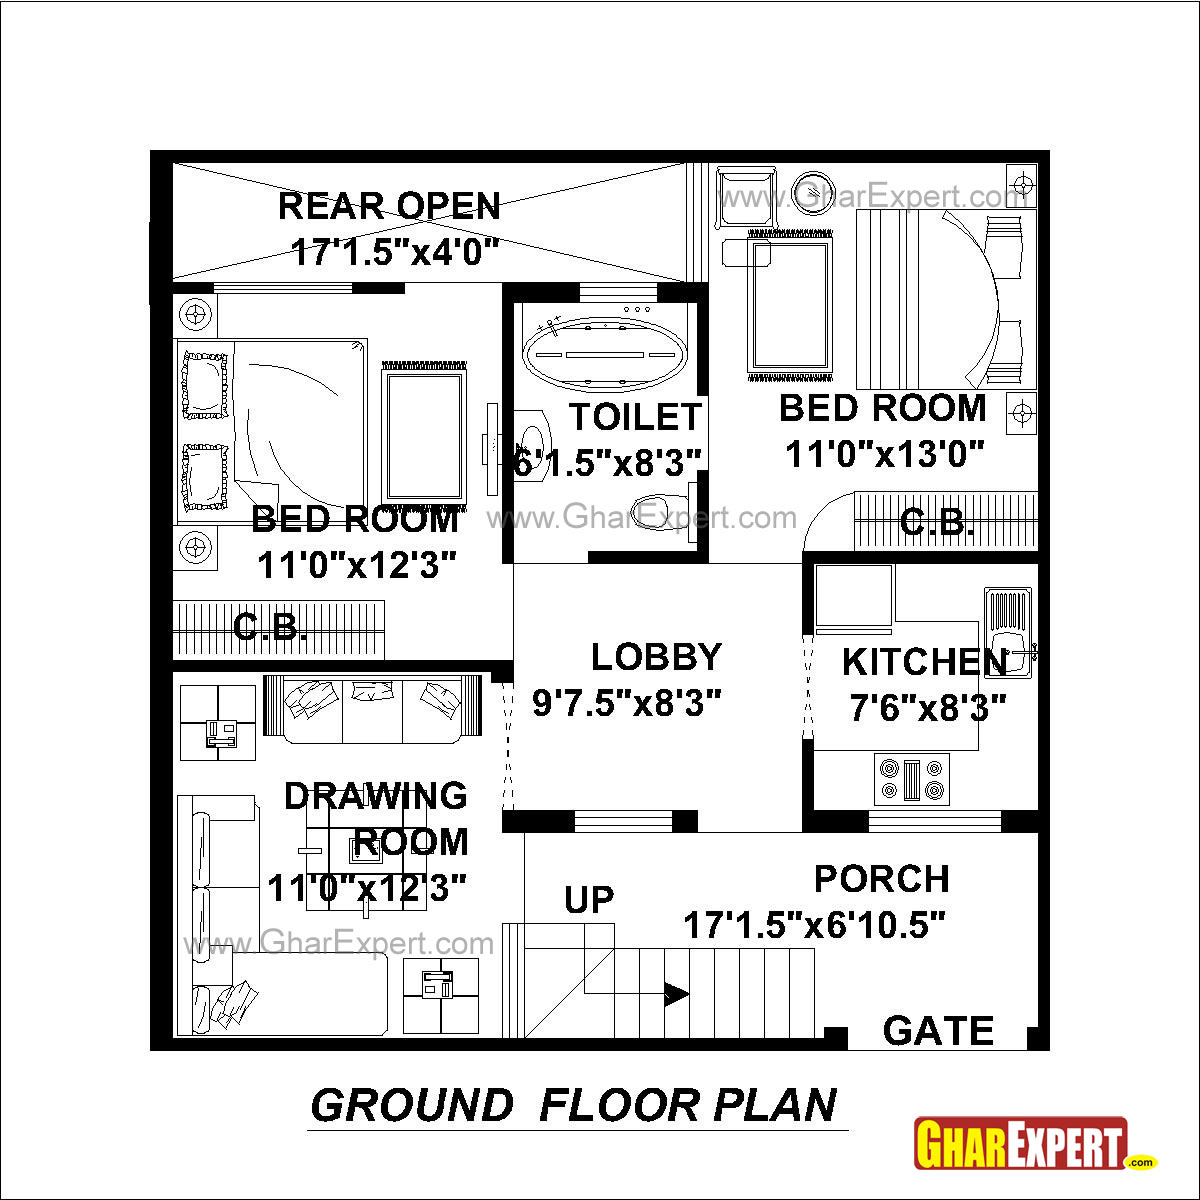 House Plan For 30 Feet By 30 Feet Plot (Plot Size 100 Square Yards)    GharExpert.com